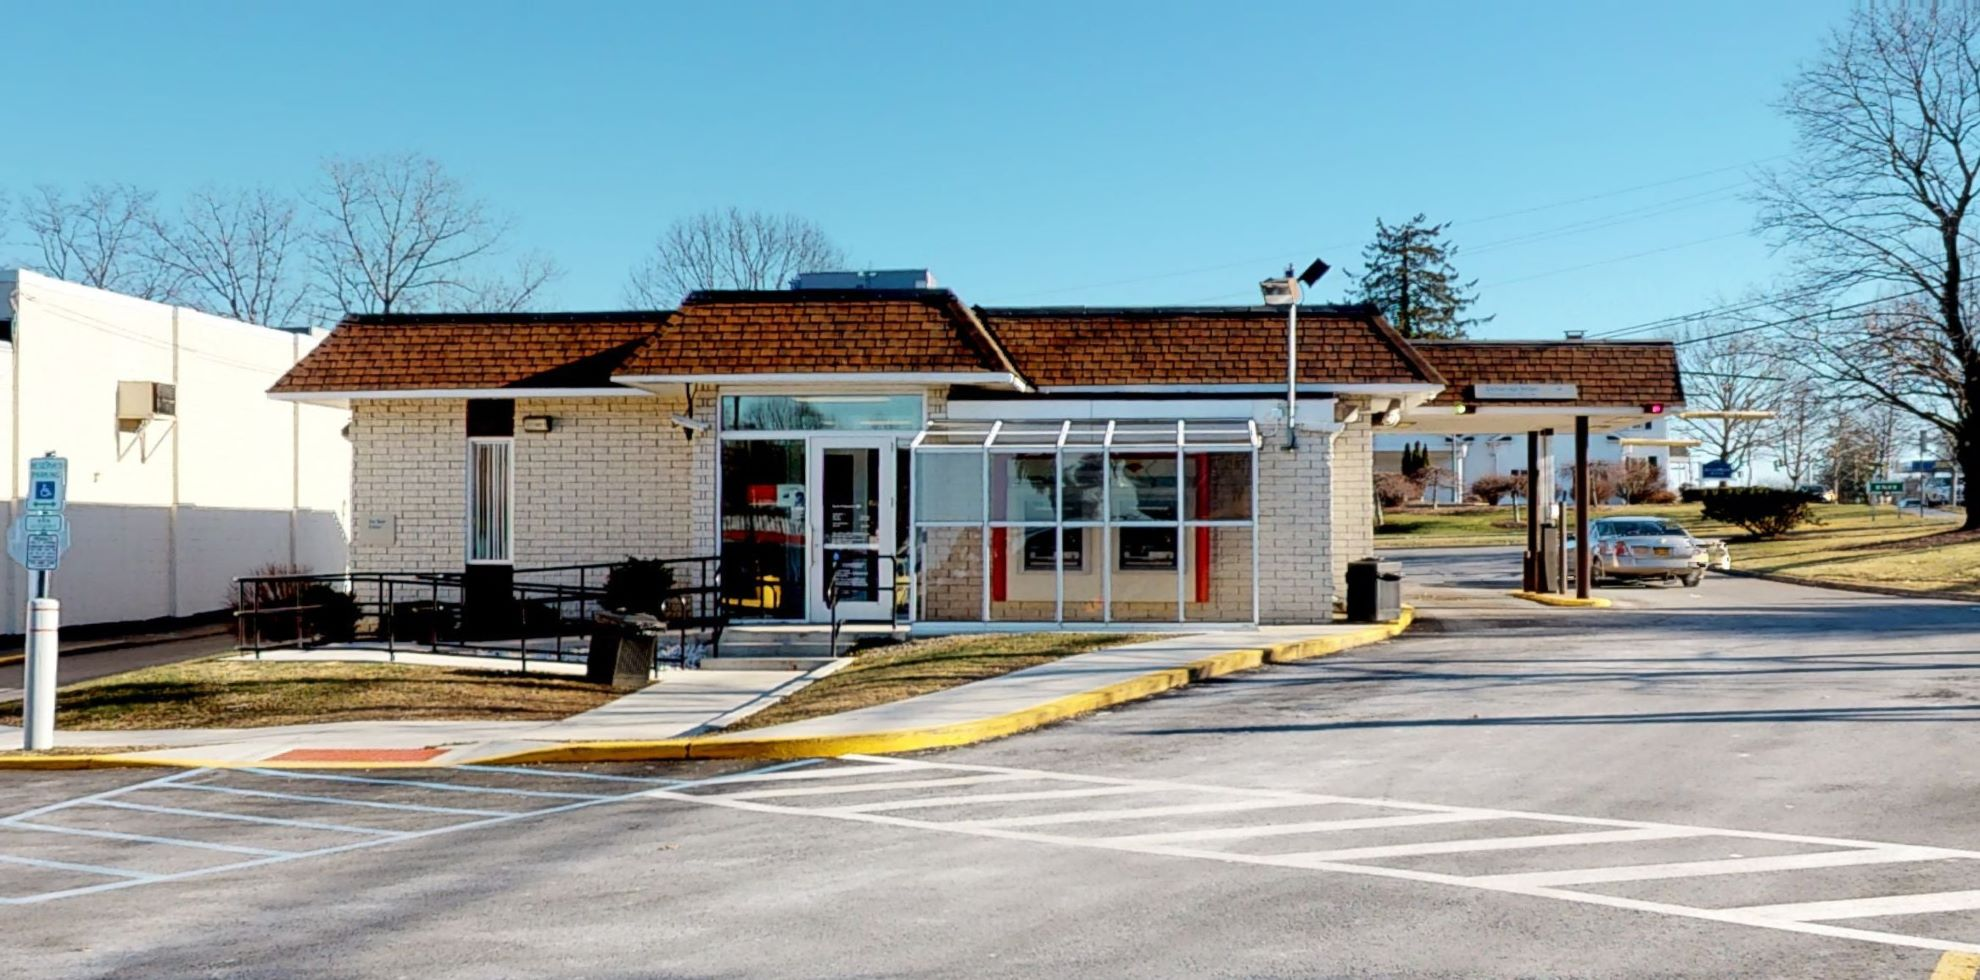 Bank of America financial center with walk-up ATM   1 New Paltz Plz, New Paltz, NY 12561